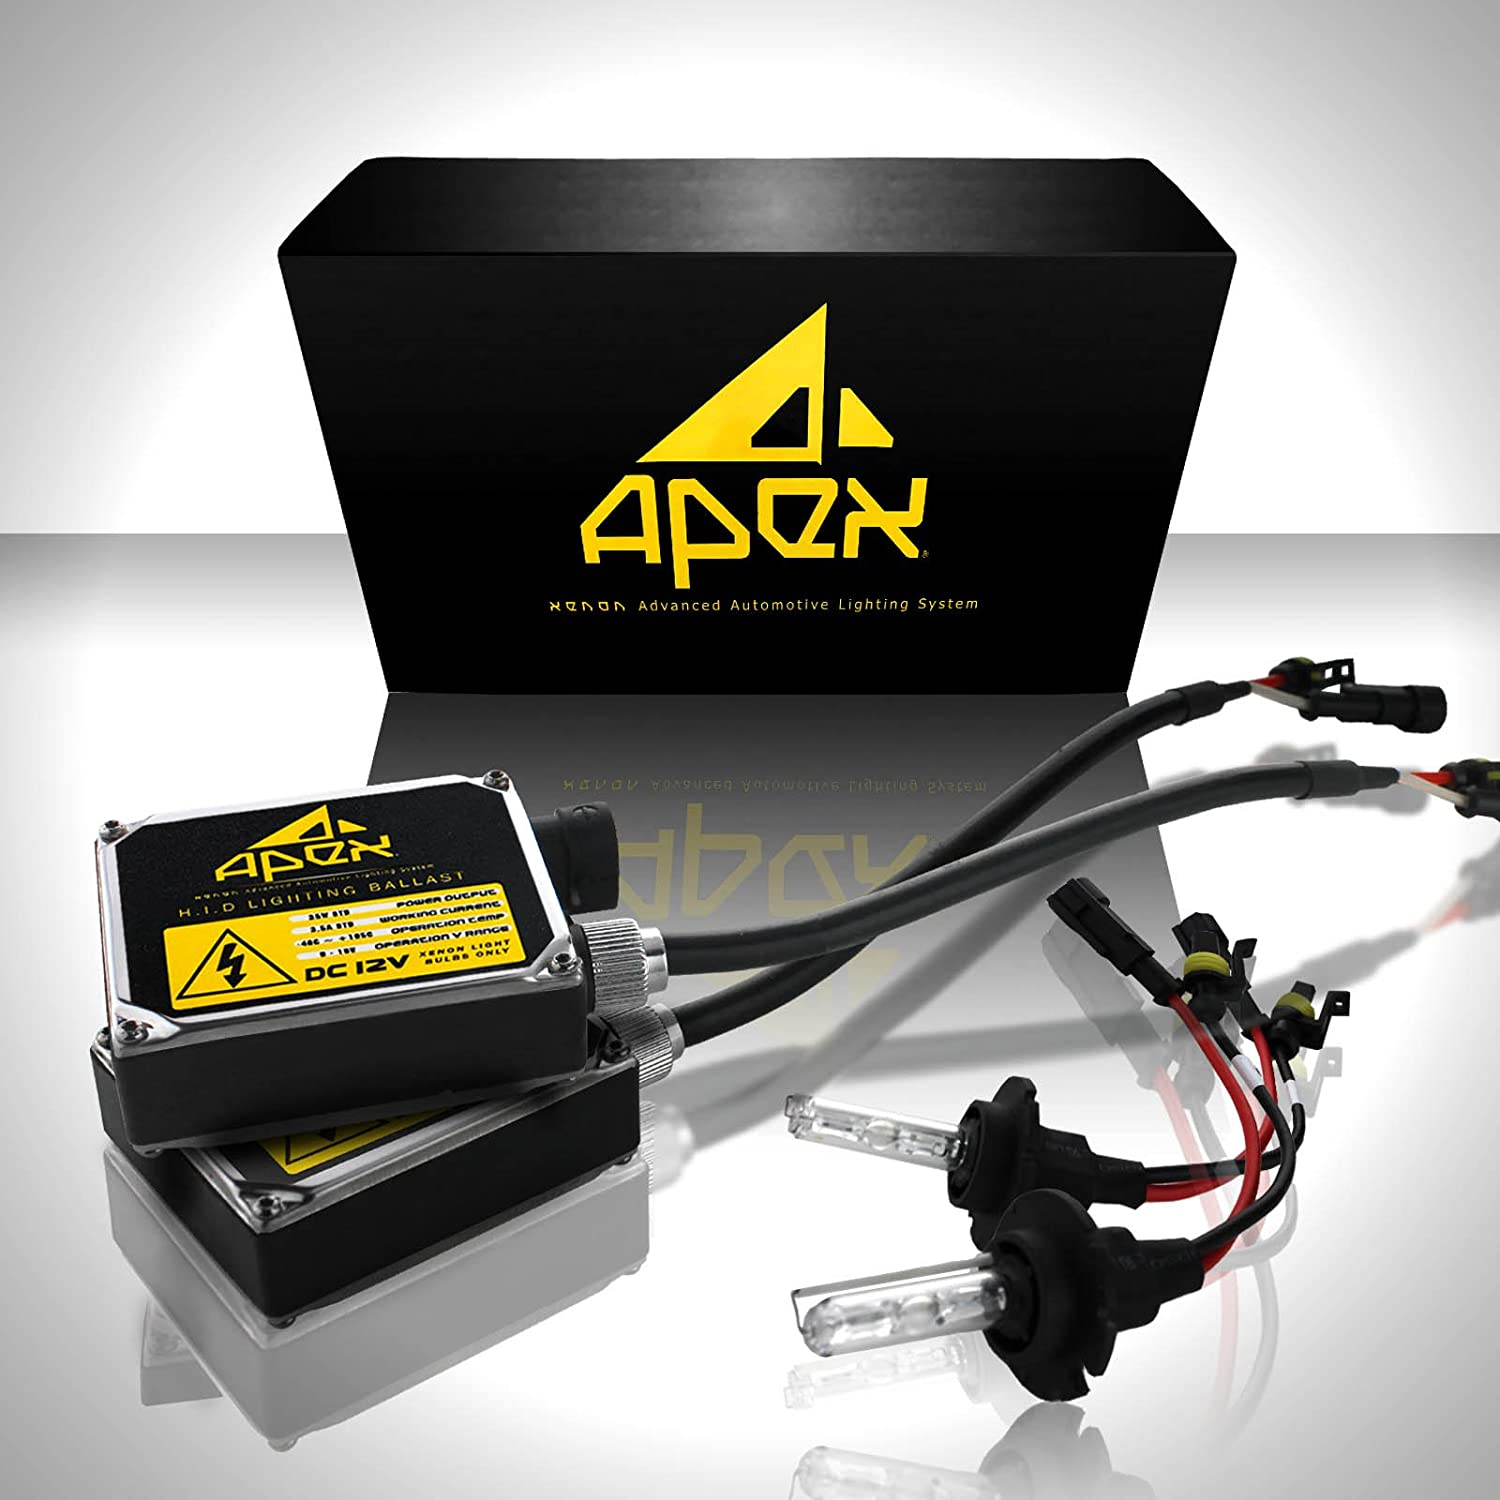 Apex 9006 Hb4 Xenon Hid Conversion Kit 5k 5000k Oem Powerstroke Wiring Harness Sleeve White Color All Bulb Sizes And Colors With Premium Digital Ballasts Hids Kits